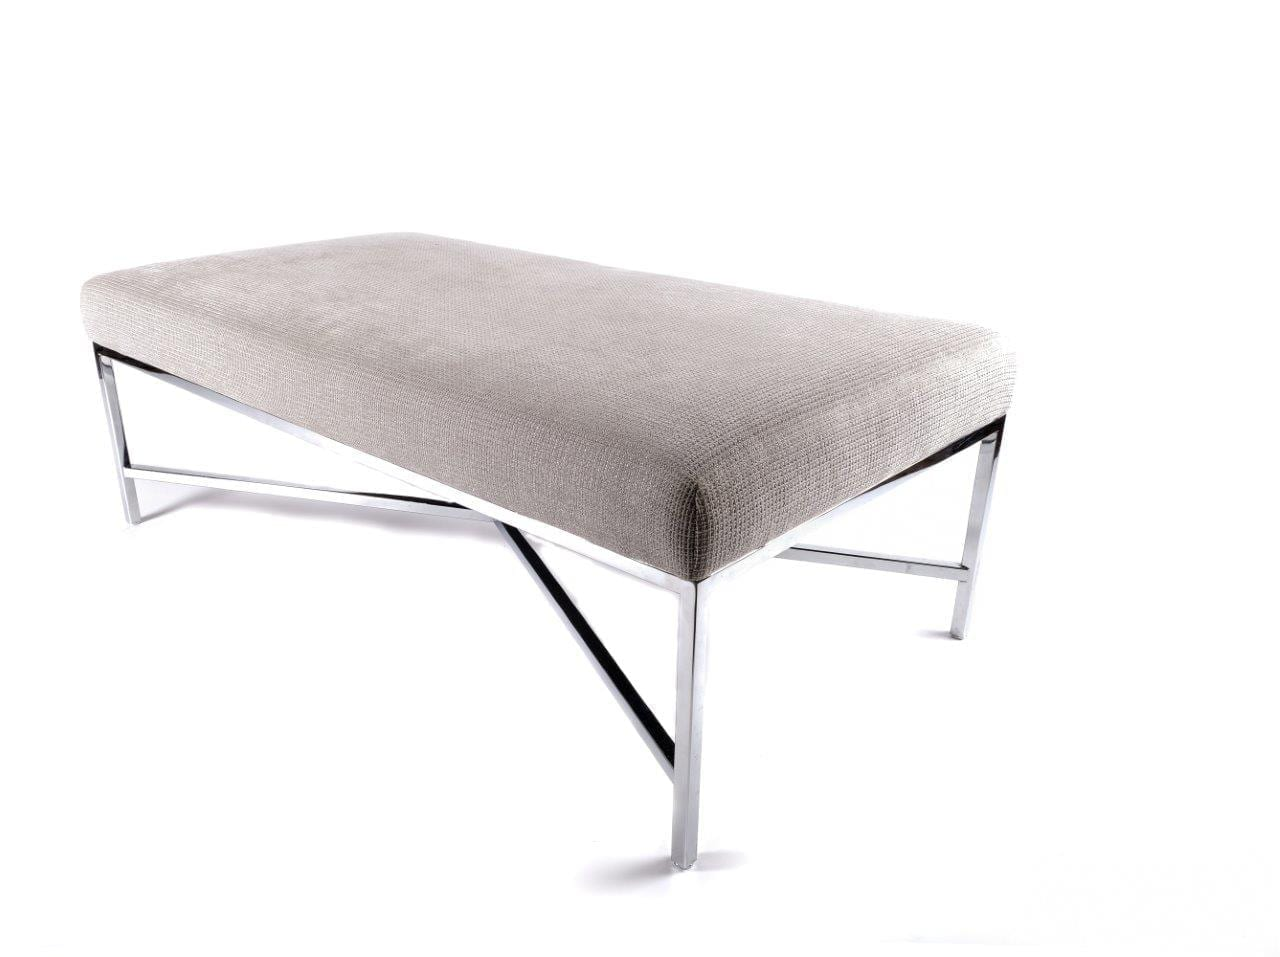 Prime Grey Fabric Bench 46X24X16 Gmtry Best Dining Table And Chair Ideas Images Gmtryco